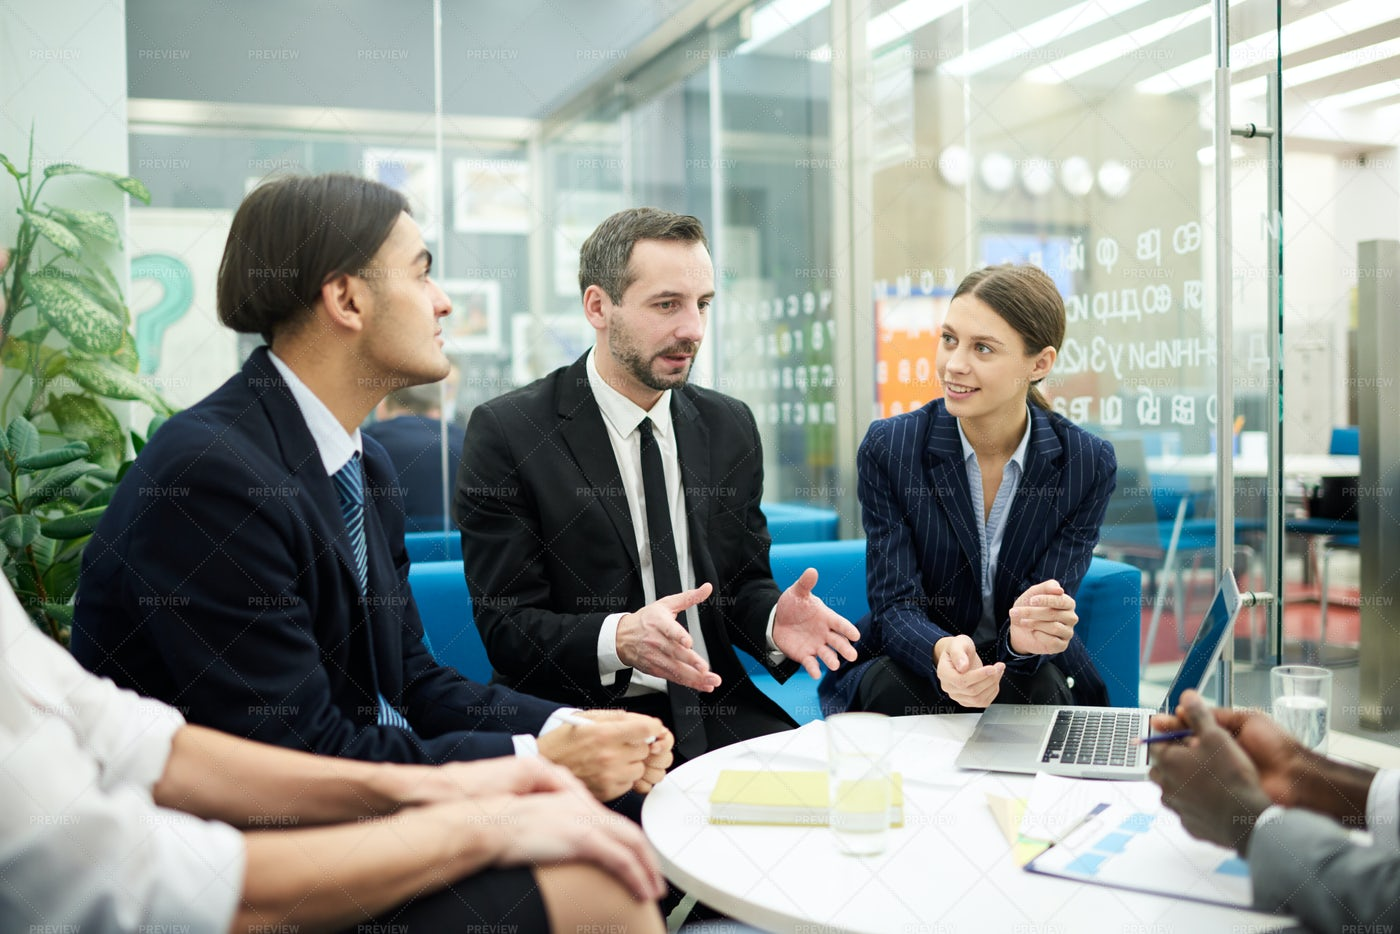 Businesspeople Meeting In Office: Stock Photos